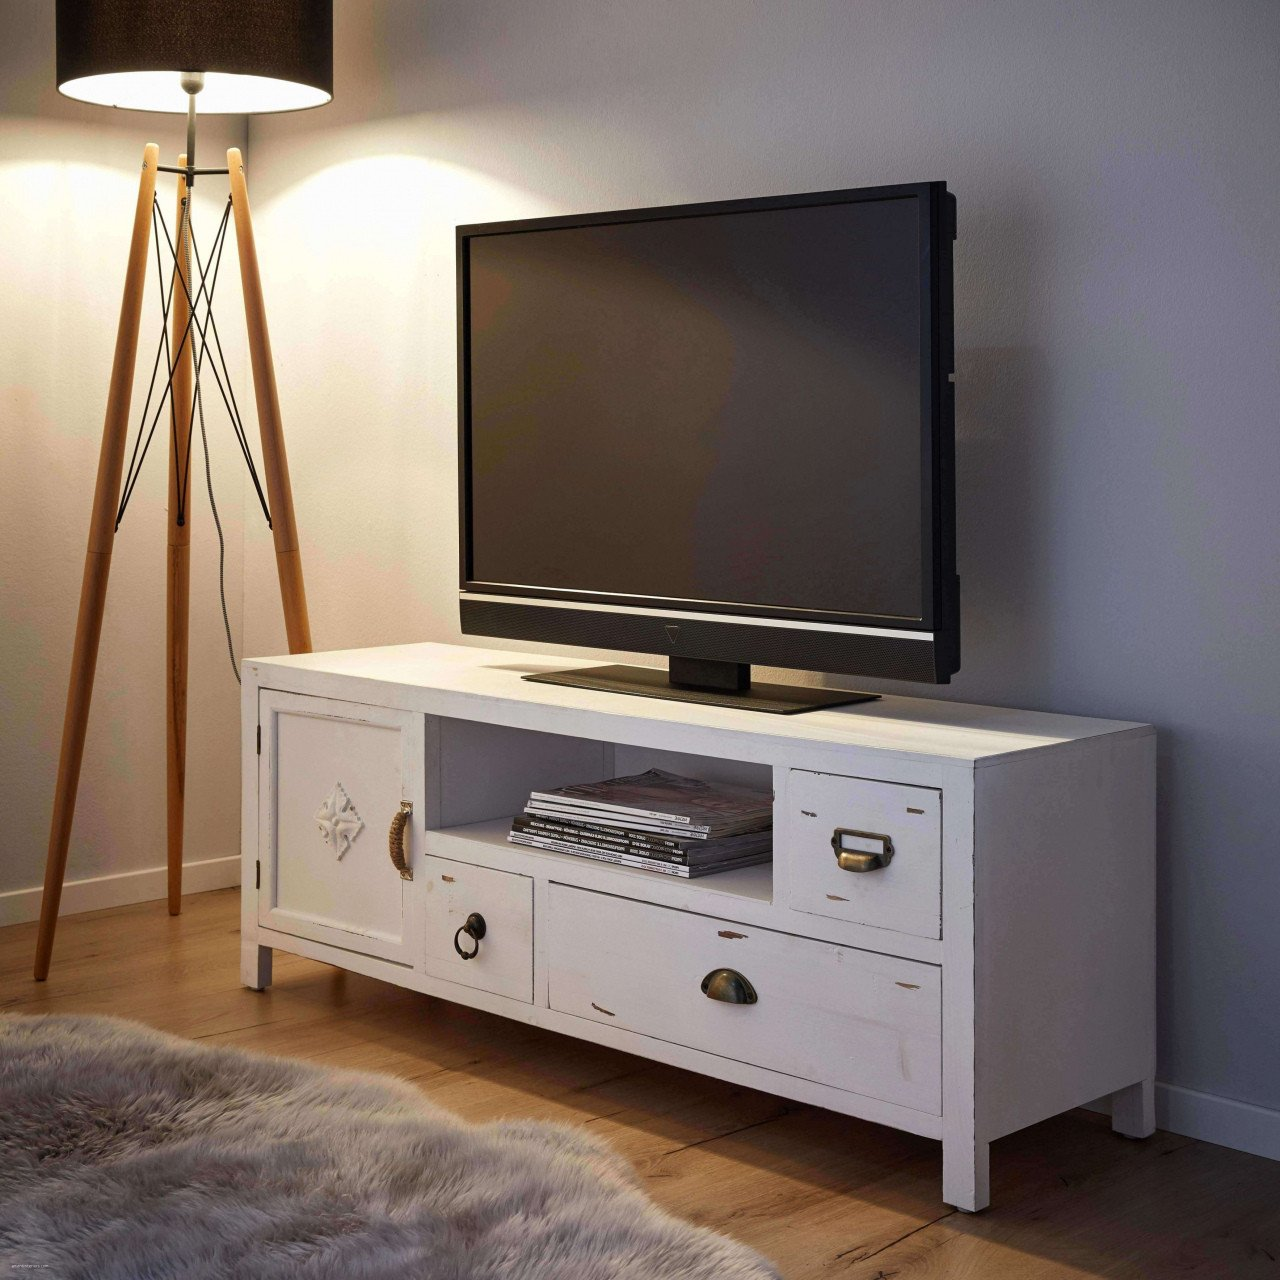 Tv Height In Bedroom Awesome Bedroom Tv Stand — Procura Home Blog